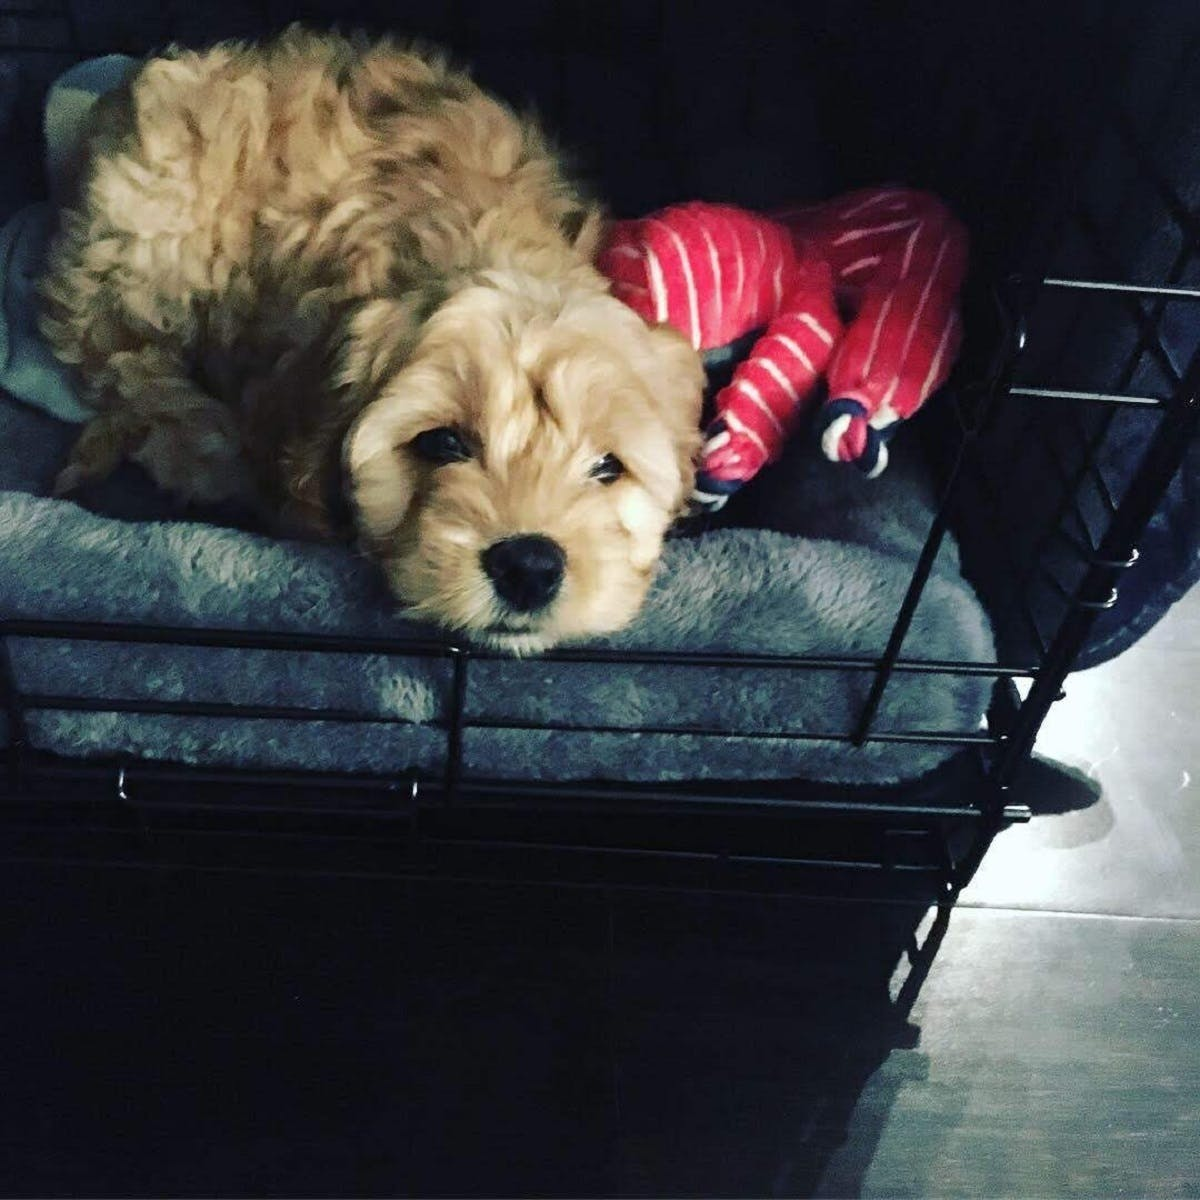 Penny the puppy sleeps in a doggy bed